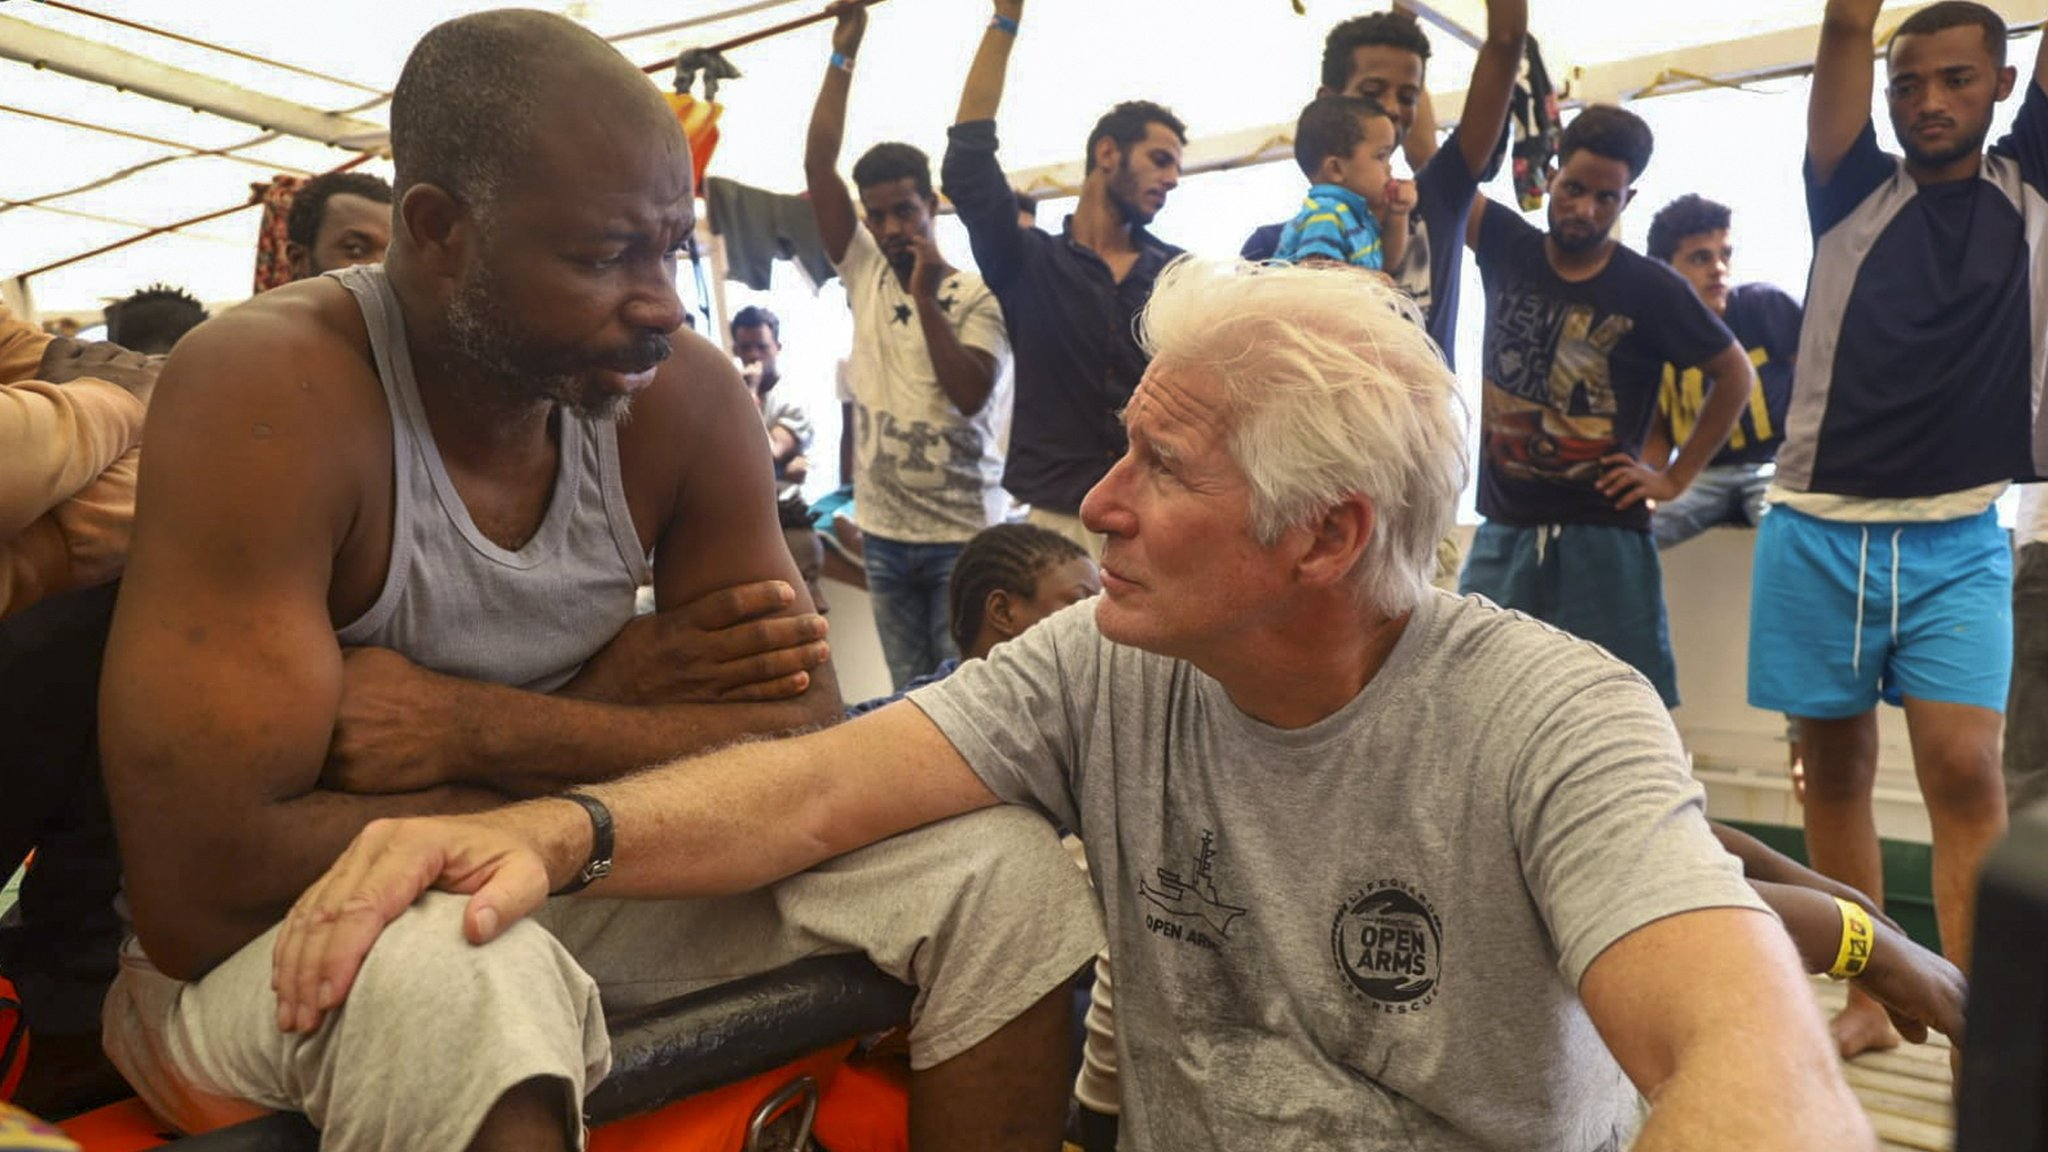 Salvini tells Gere to take rescued migrants 'back to Hollywood'